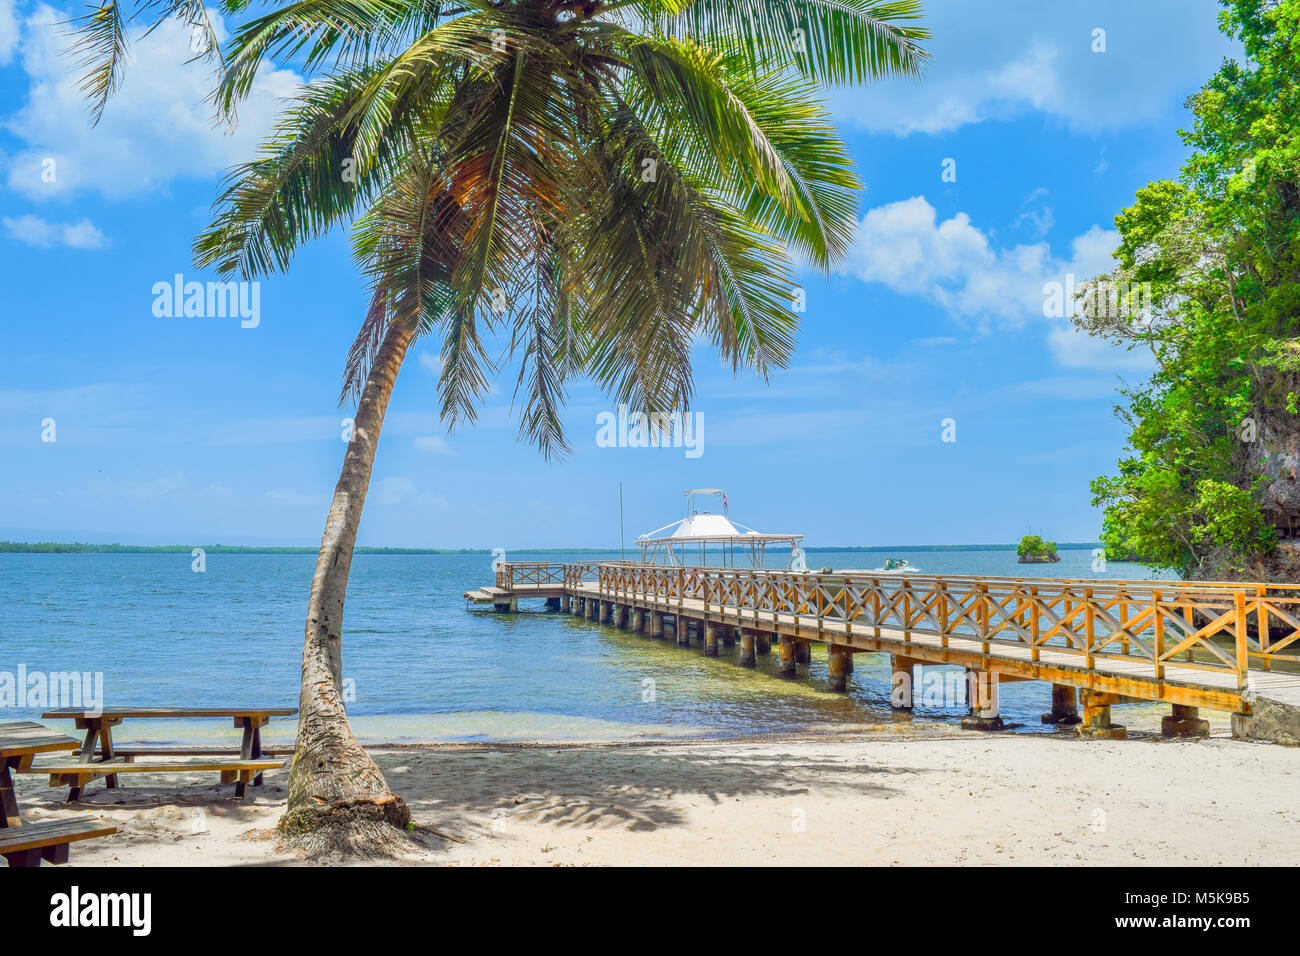 Sandy beach with a big palm and small bridge in caribbean Sea, Dominican Republic - Stock Image